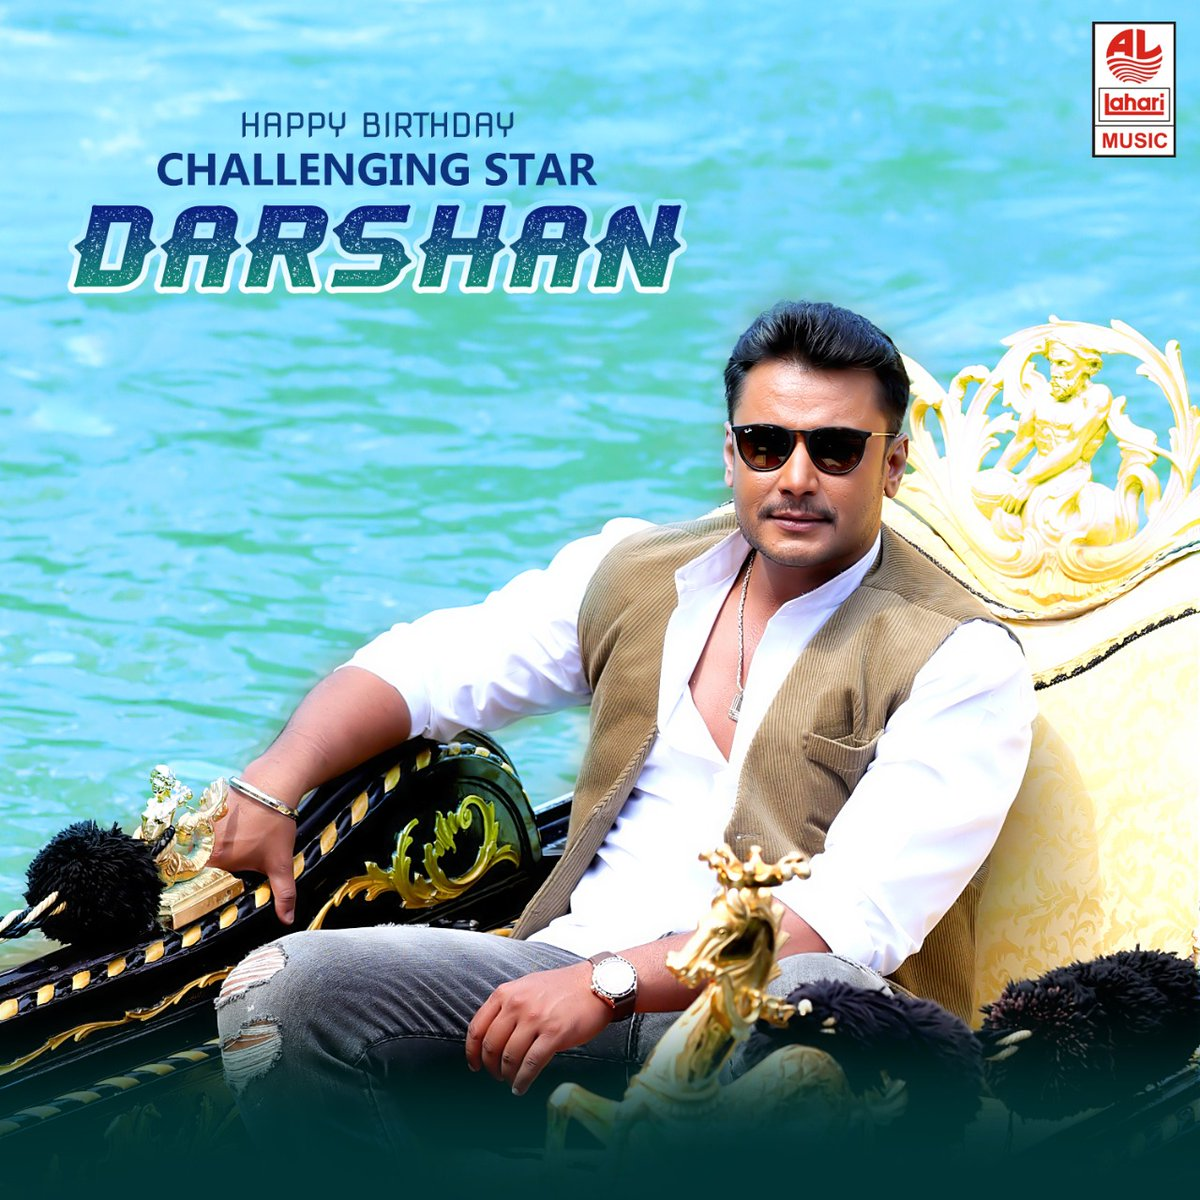 Wishing Challenging Star @dasadarshan a Very Happy Birthday !!! Listen to his superhit songs:  #HBDChallengingStarDarshan